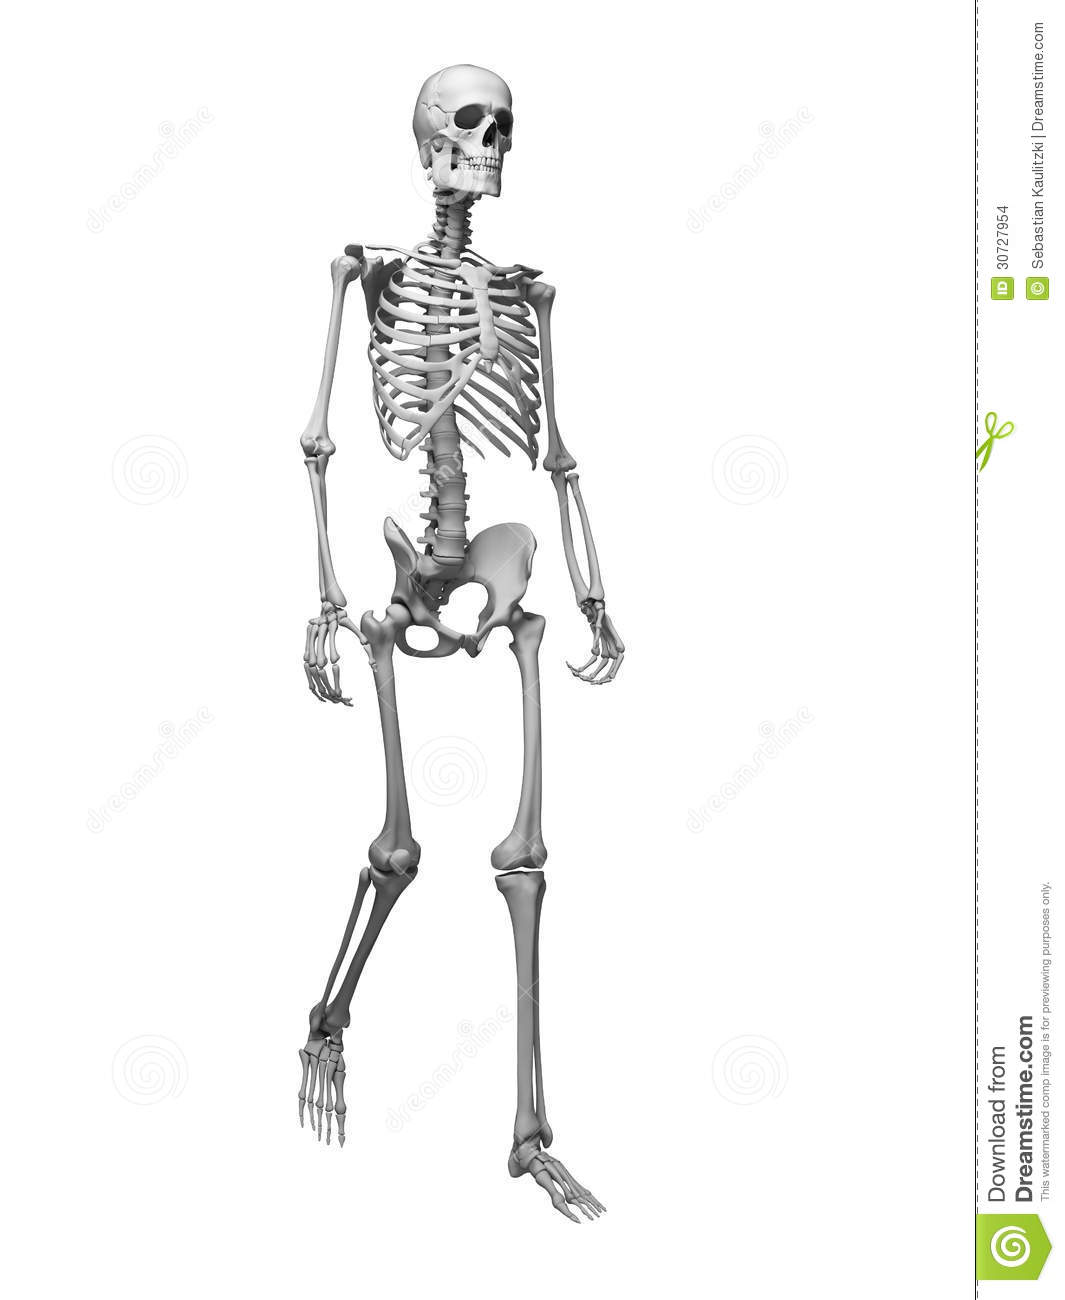 walking skeleton stock images - image: 30727954, Skeleton